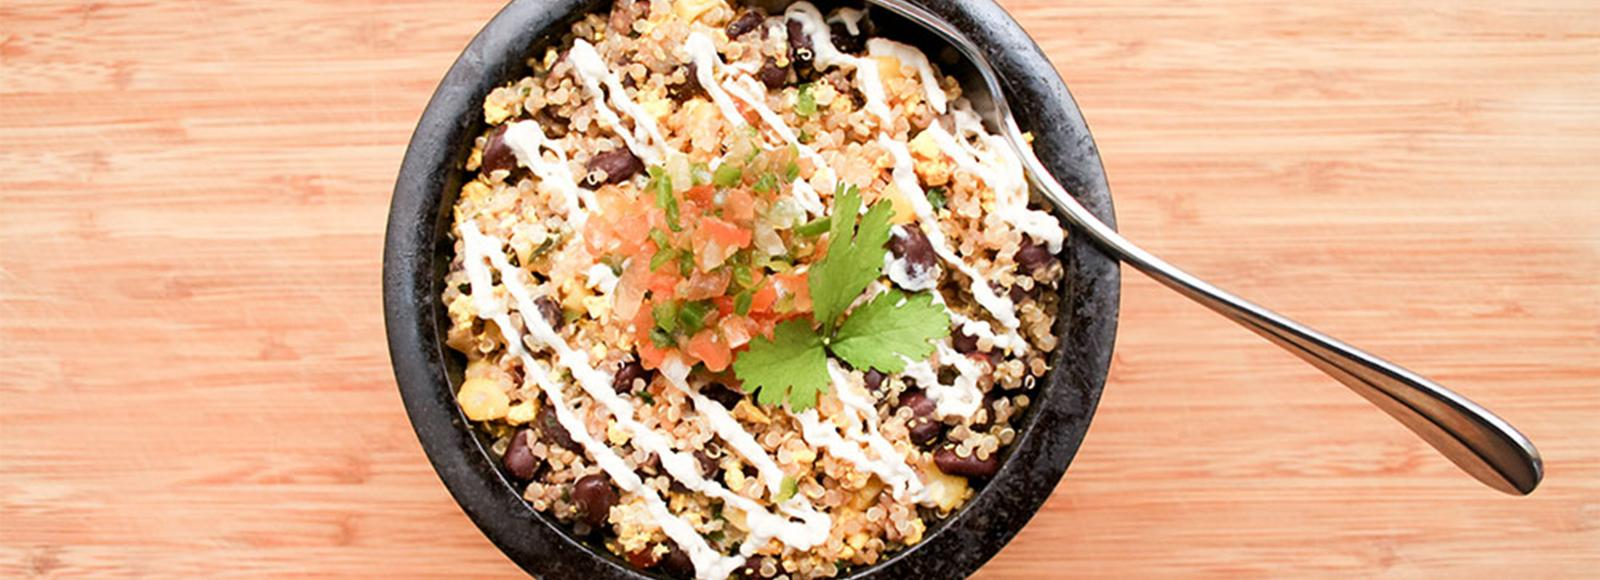 A black bowl with quinoa and other beans and grains.